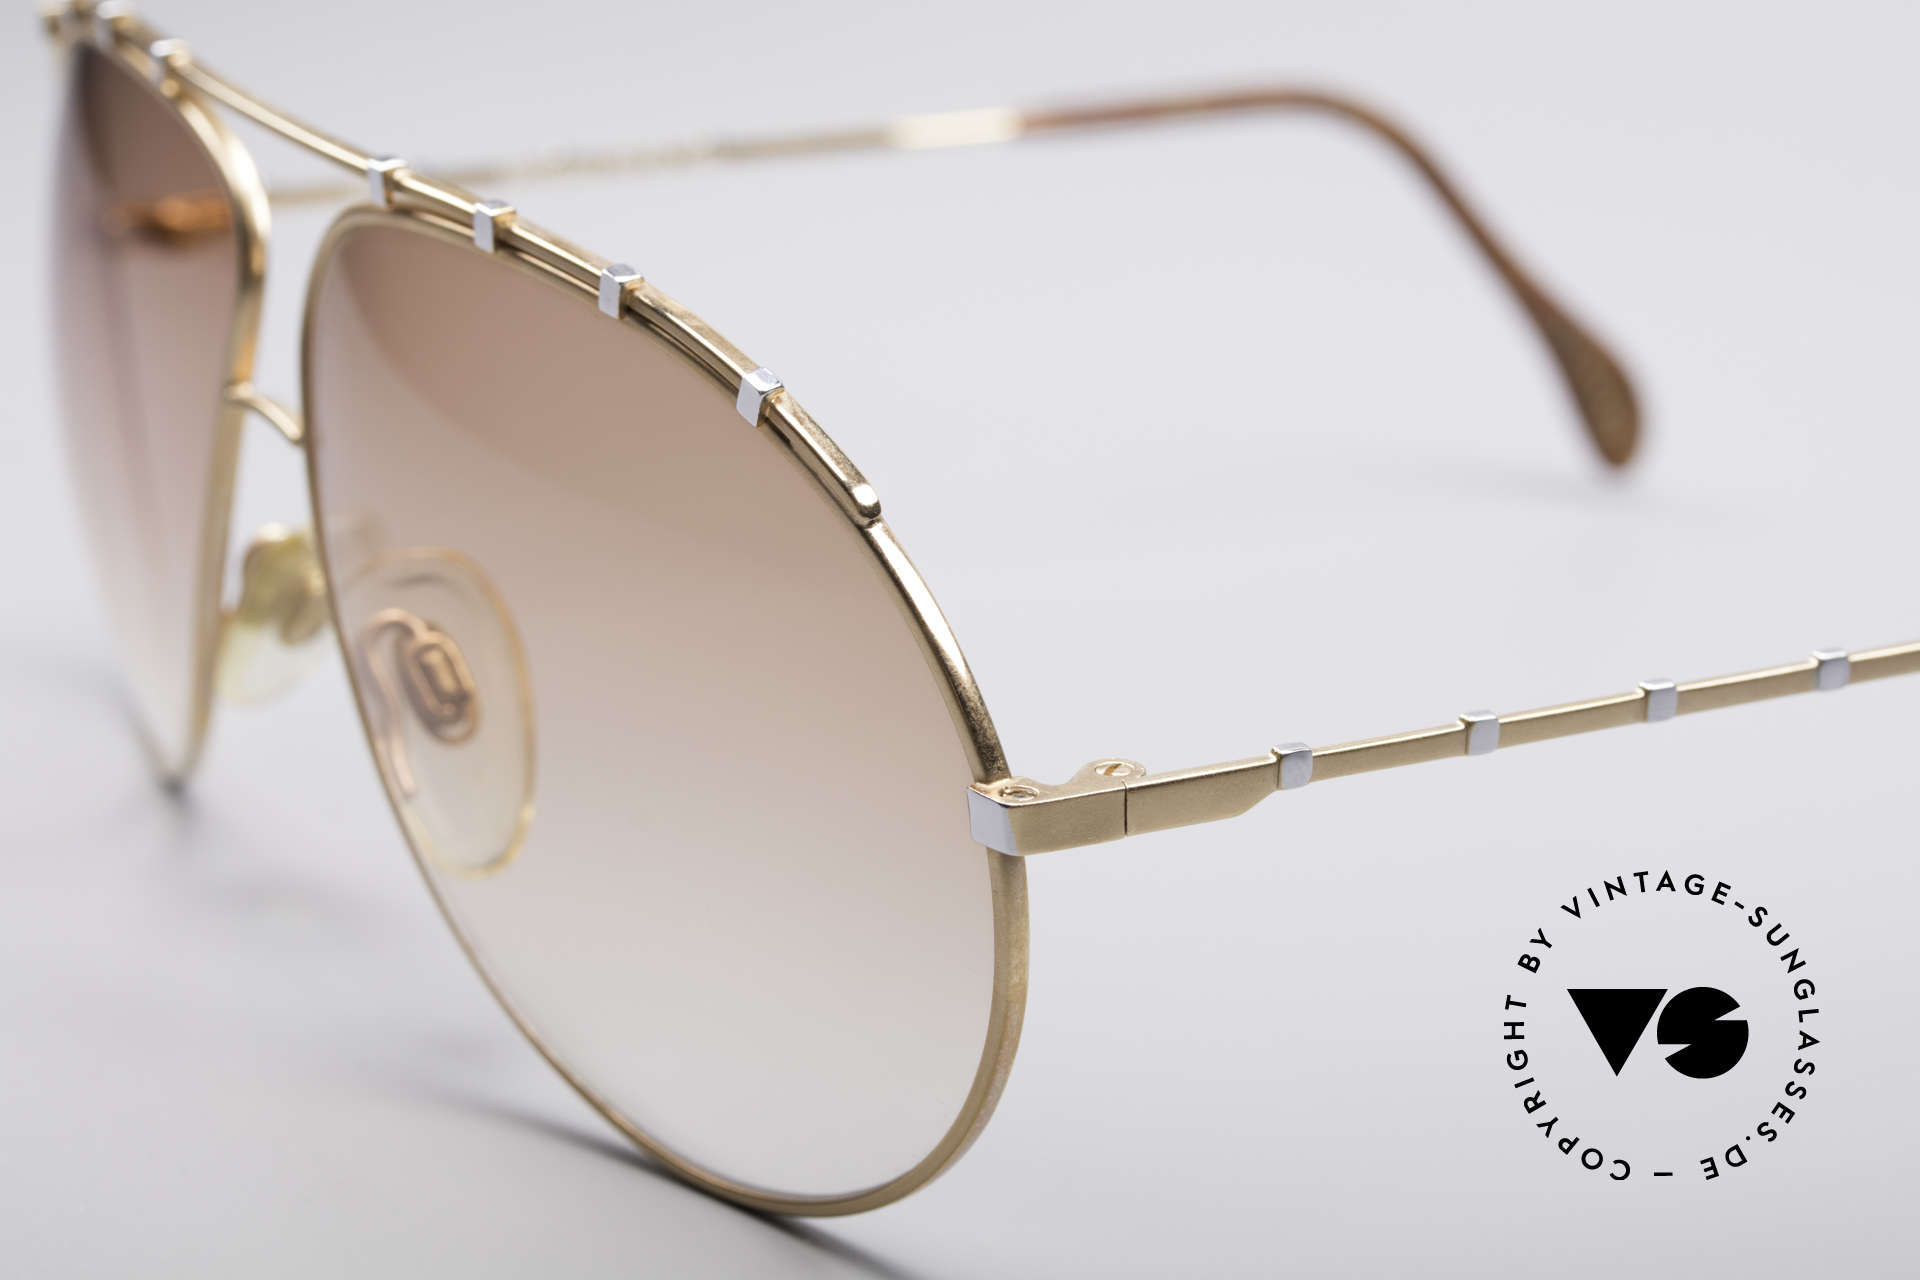 Zollitsch Marquise Rare Vintage Frame, slightly brown tinted lenses (also wearable at night), Made for Men